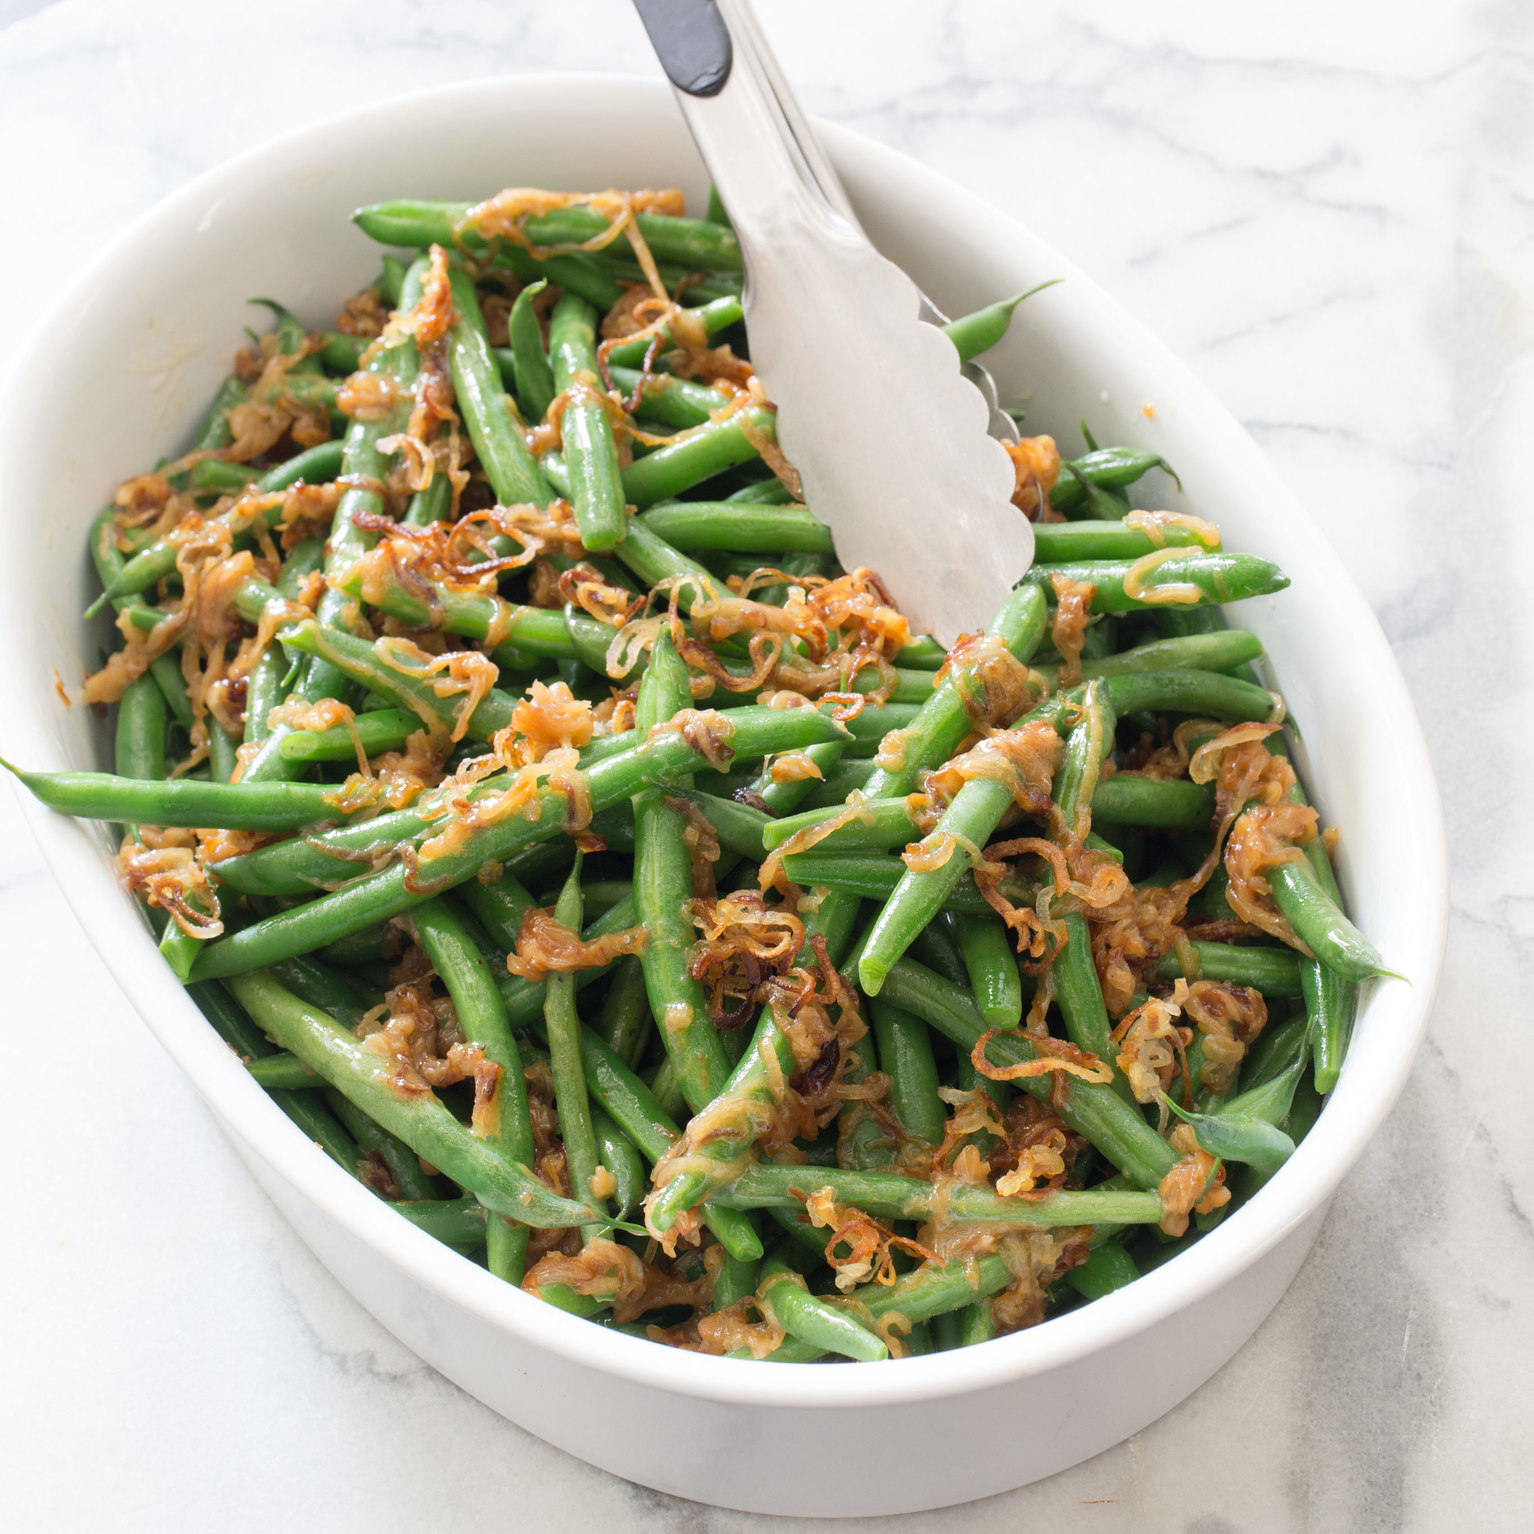 Green Beans with Sauteed Shallots and Vermouth